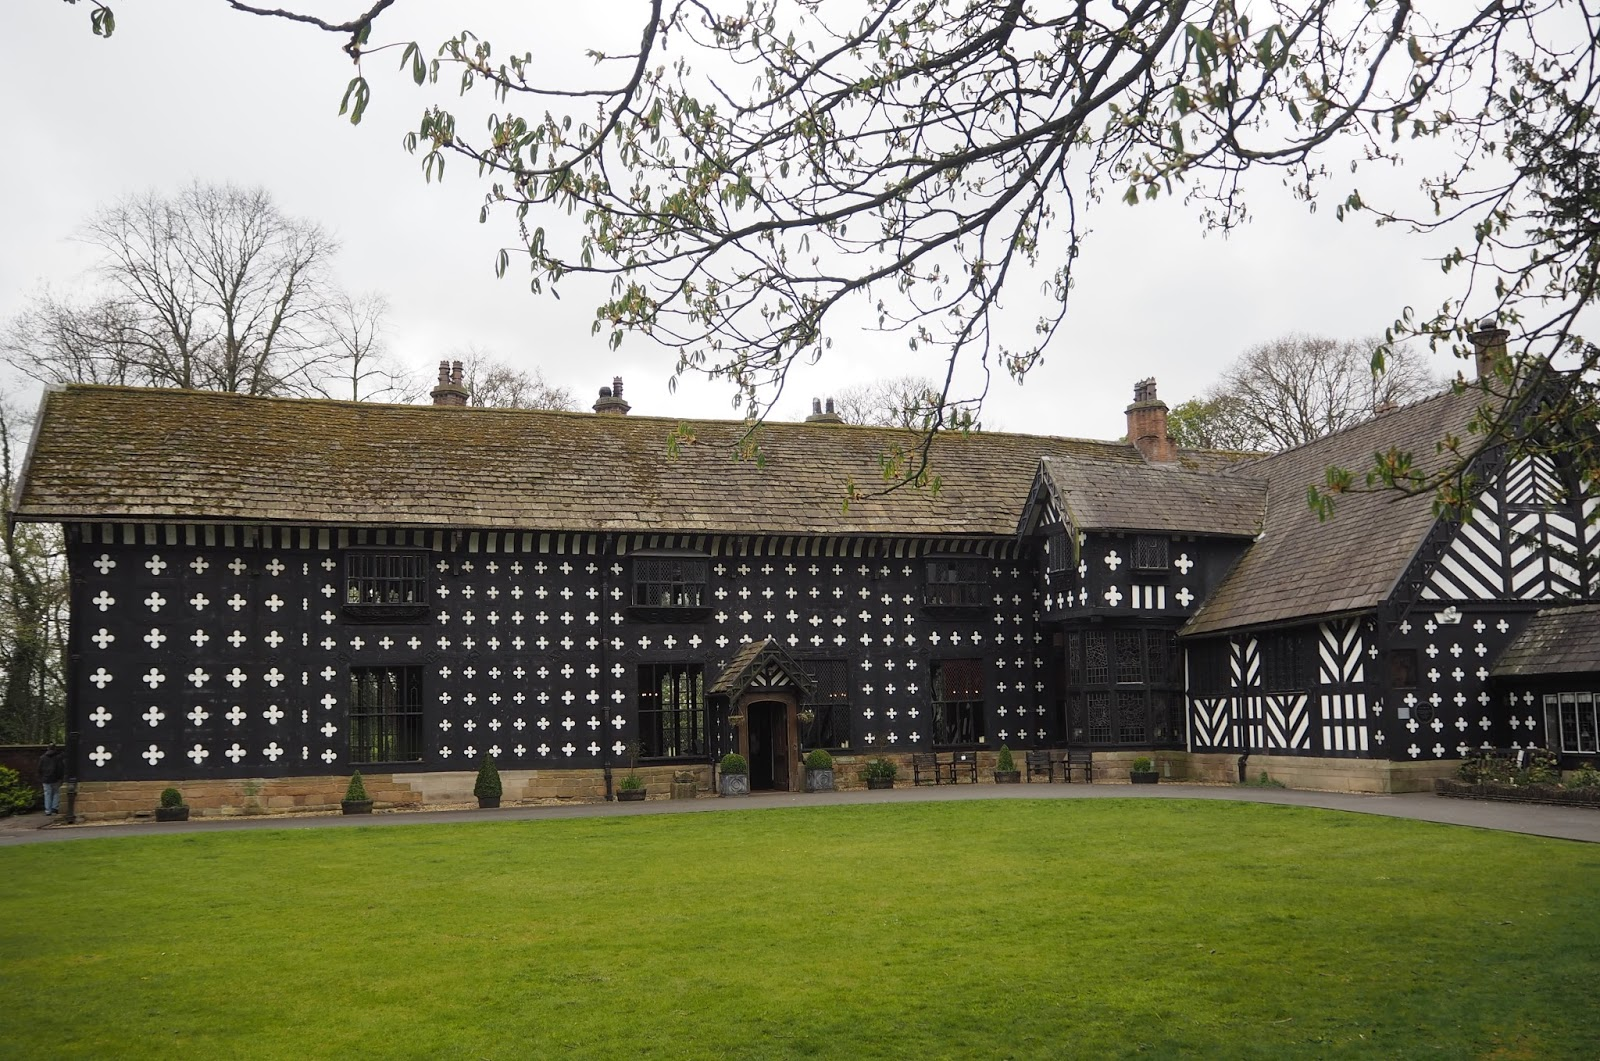 Stirk House Gisburn, Pendle Witch Tours, Samlesbury Hall, Lancashire